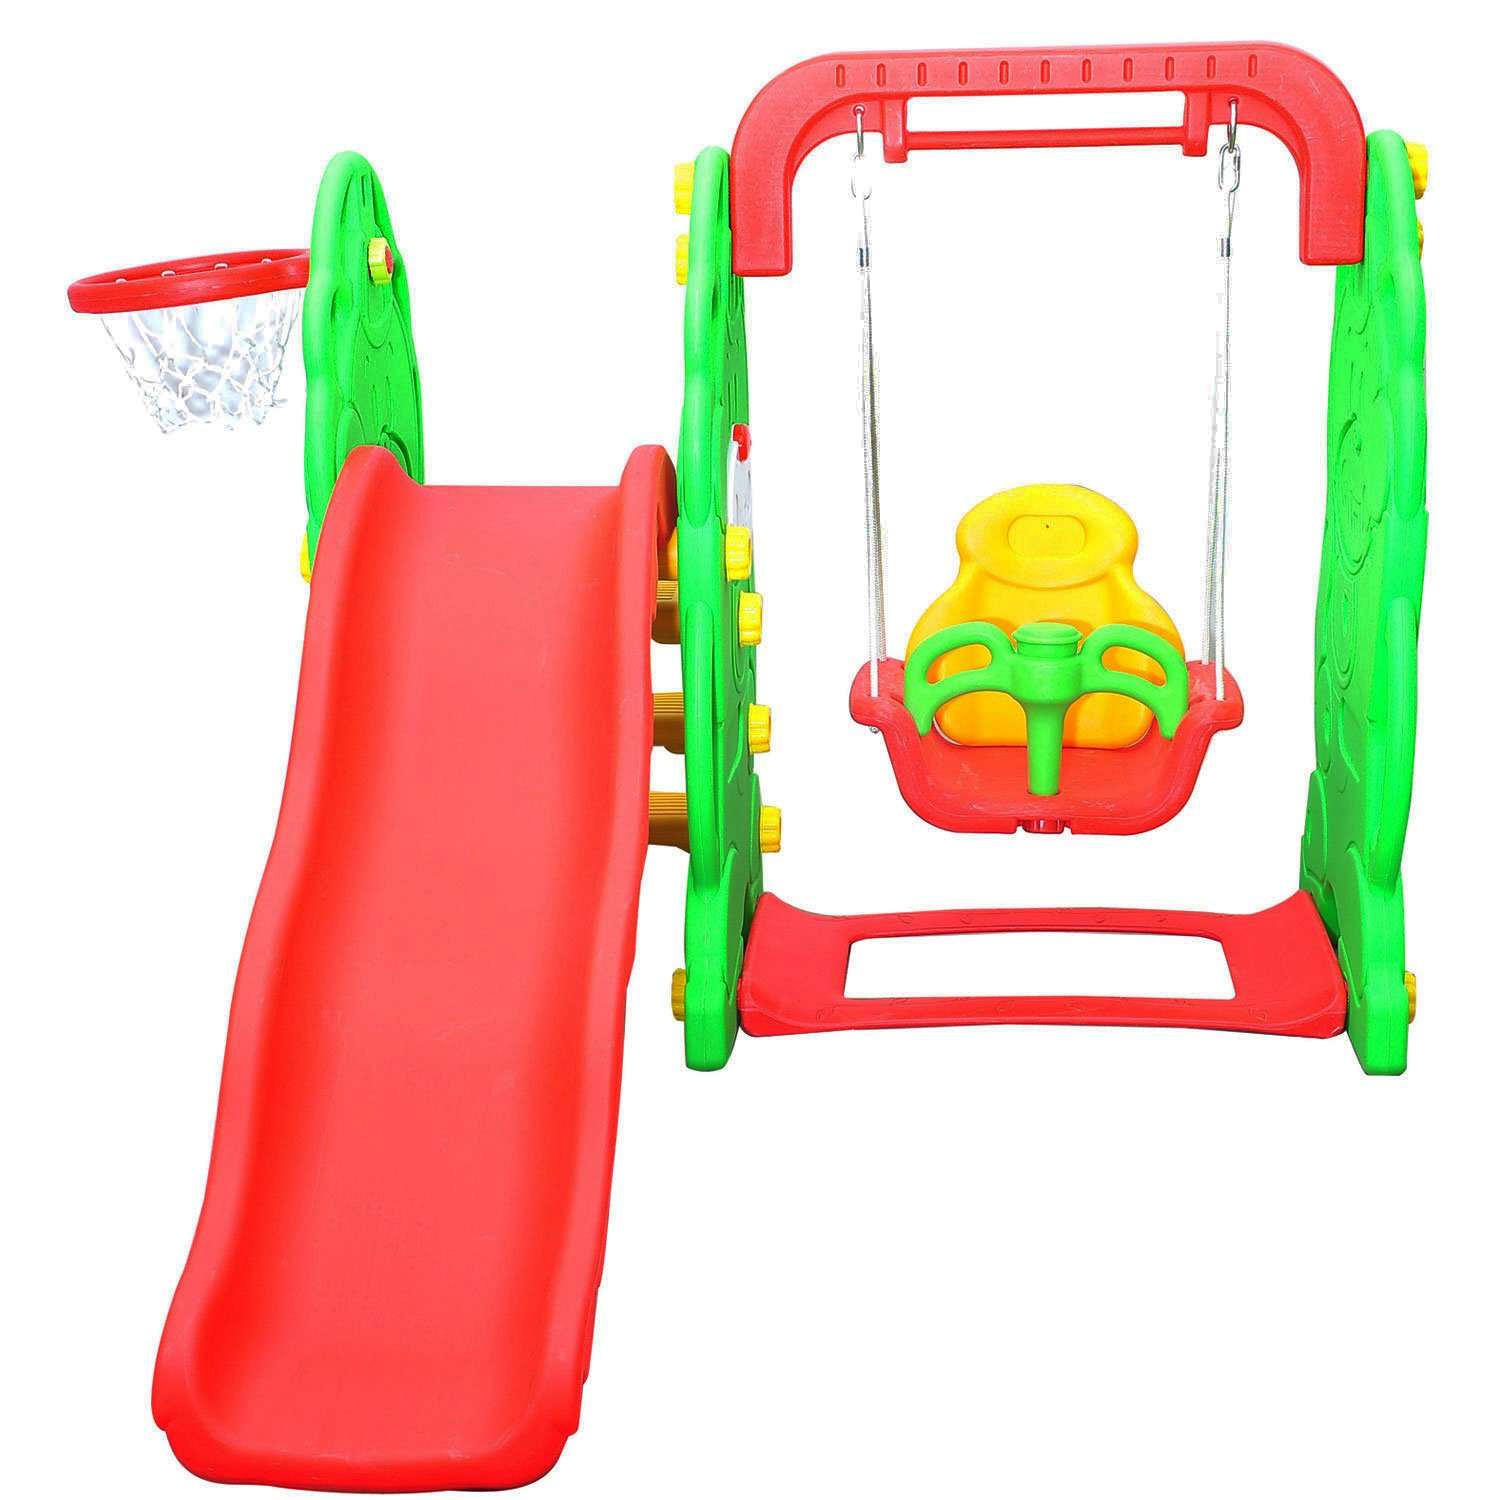 Hom Kids Garden Playground 3in1 with Swing Slide and